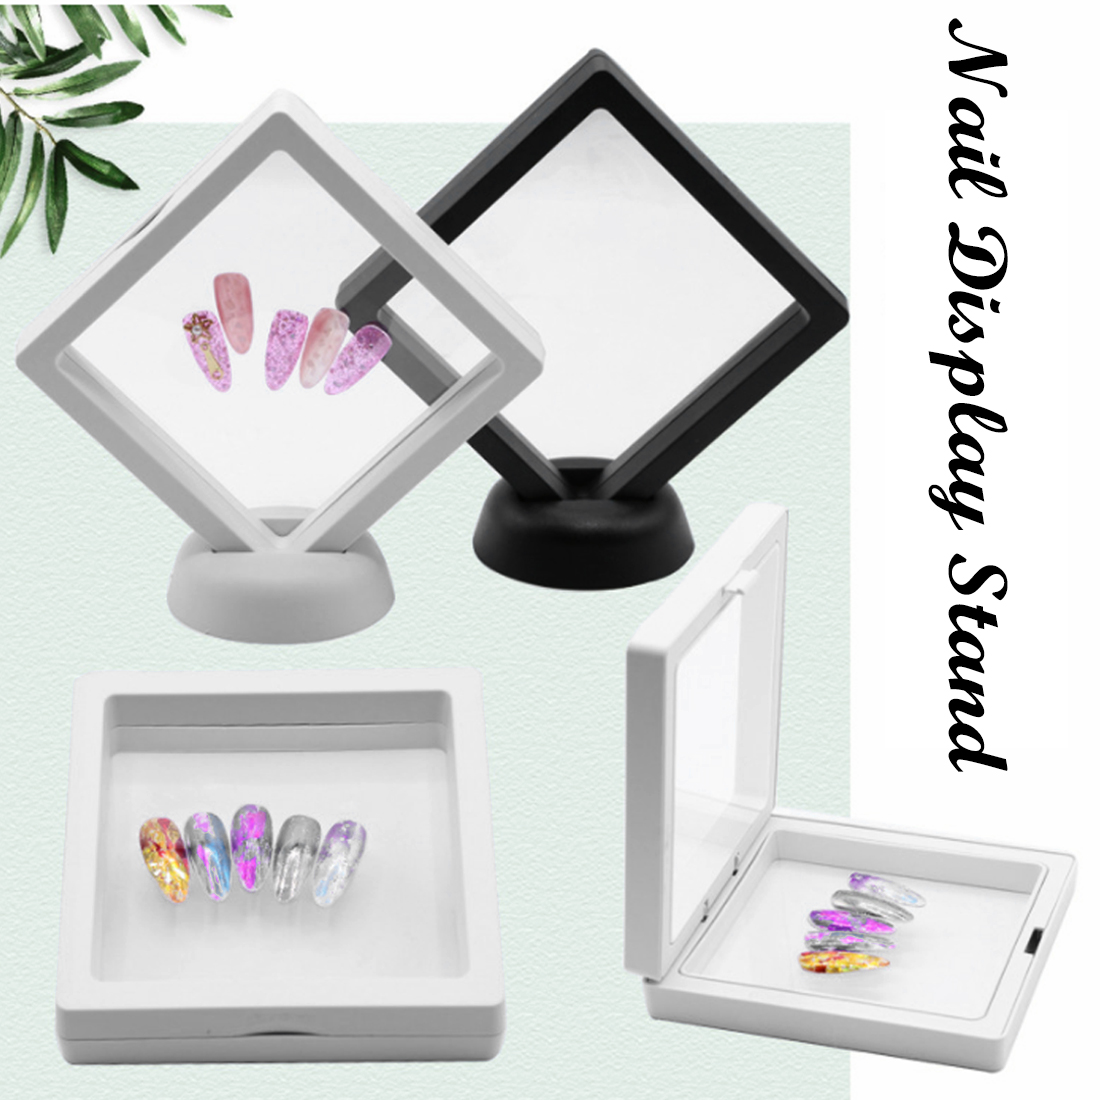 Nail Art Tools 1pcs White/Black Nail Tips Display Stand Holder Acrylic With Membrane Nails Deigns Showing Board Manicure